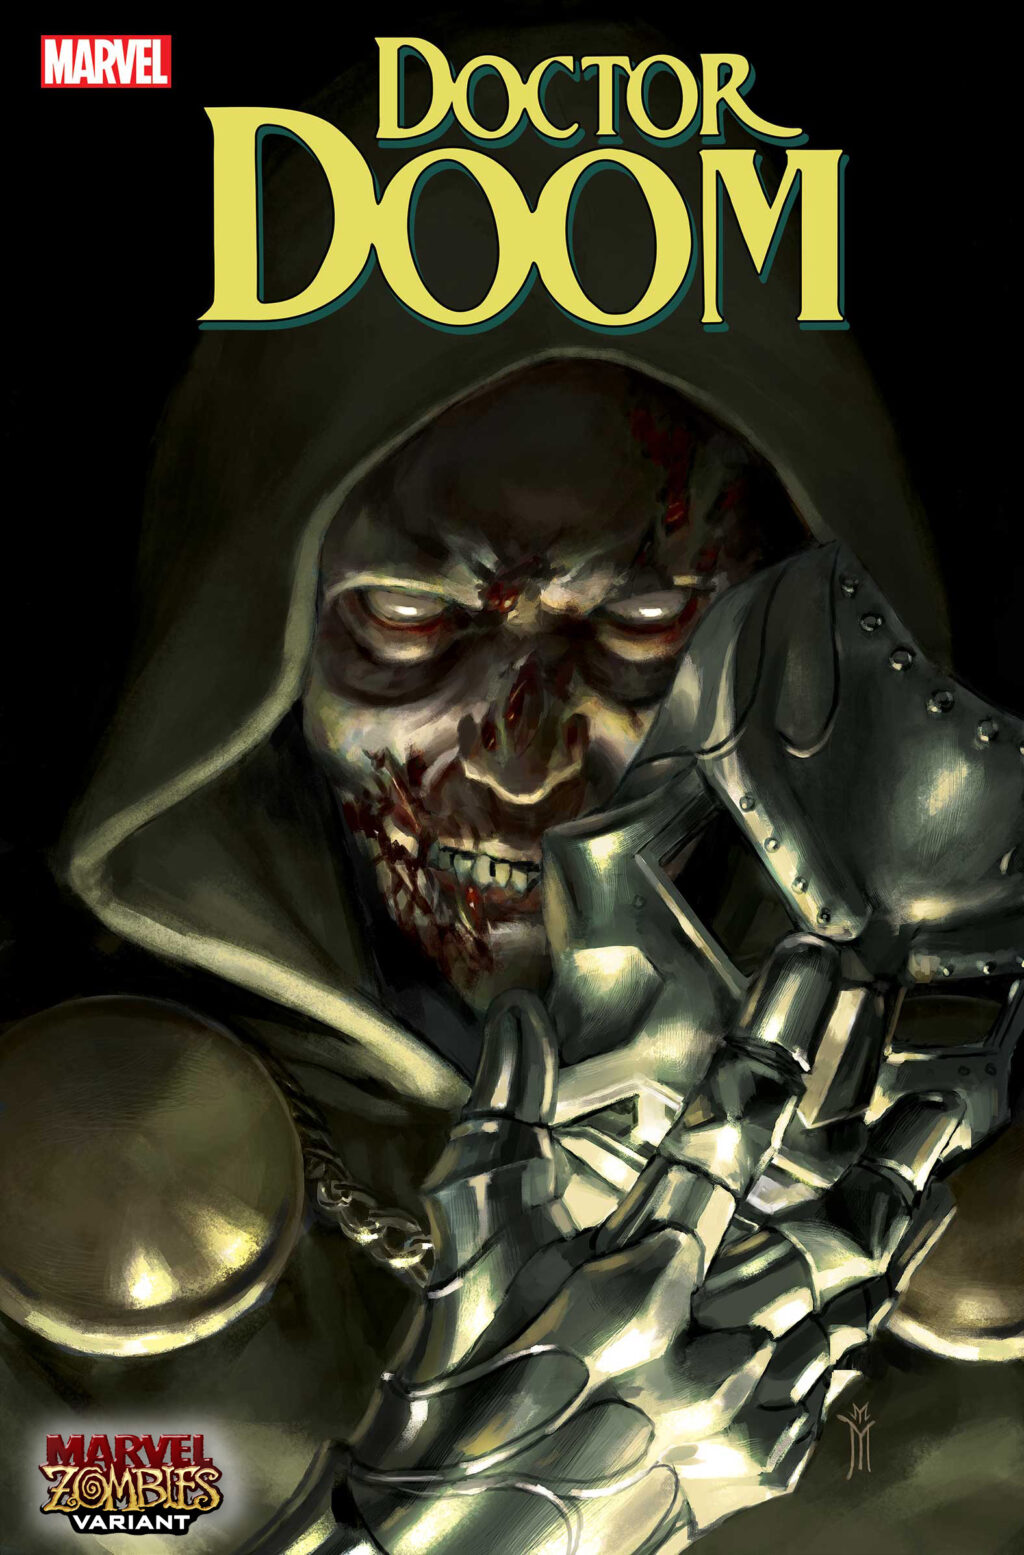 DOOM2019007 zombie Var 1024x1555 - Image Gallery: The Undead Rise in April's MARVEL ZOMBIES Variant Covers